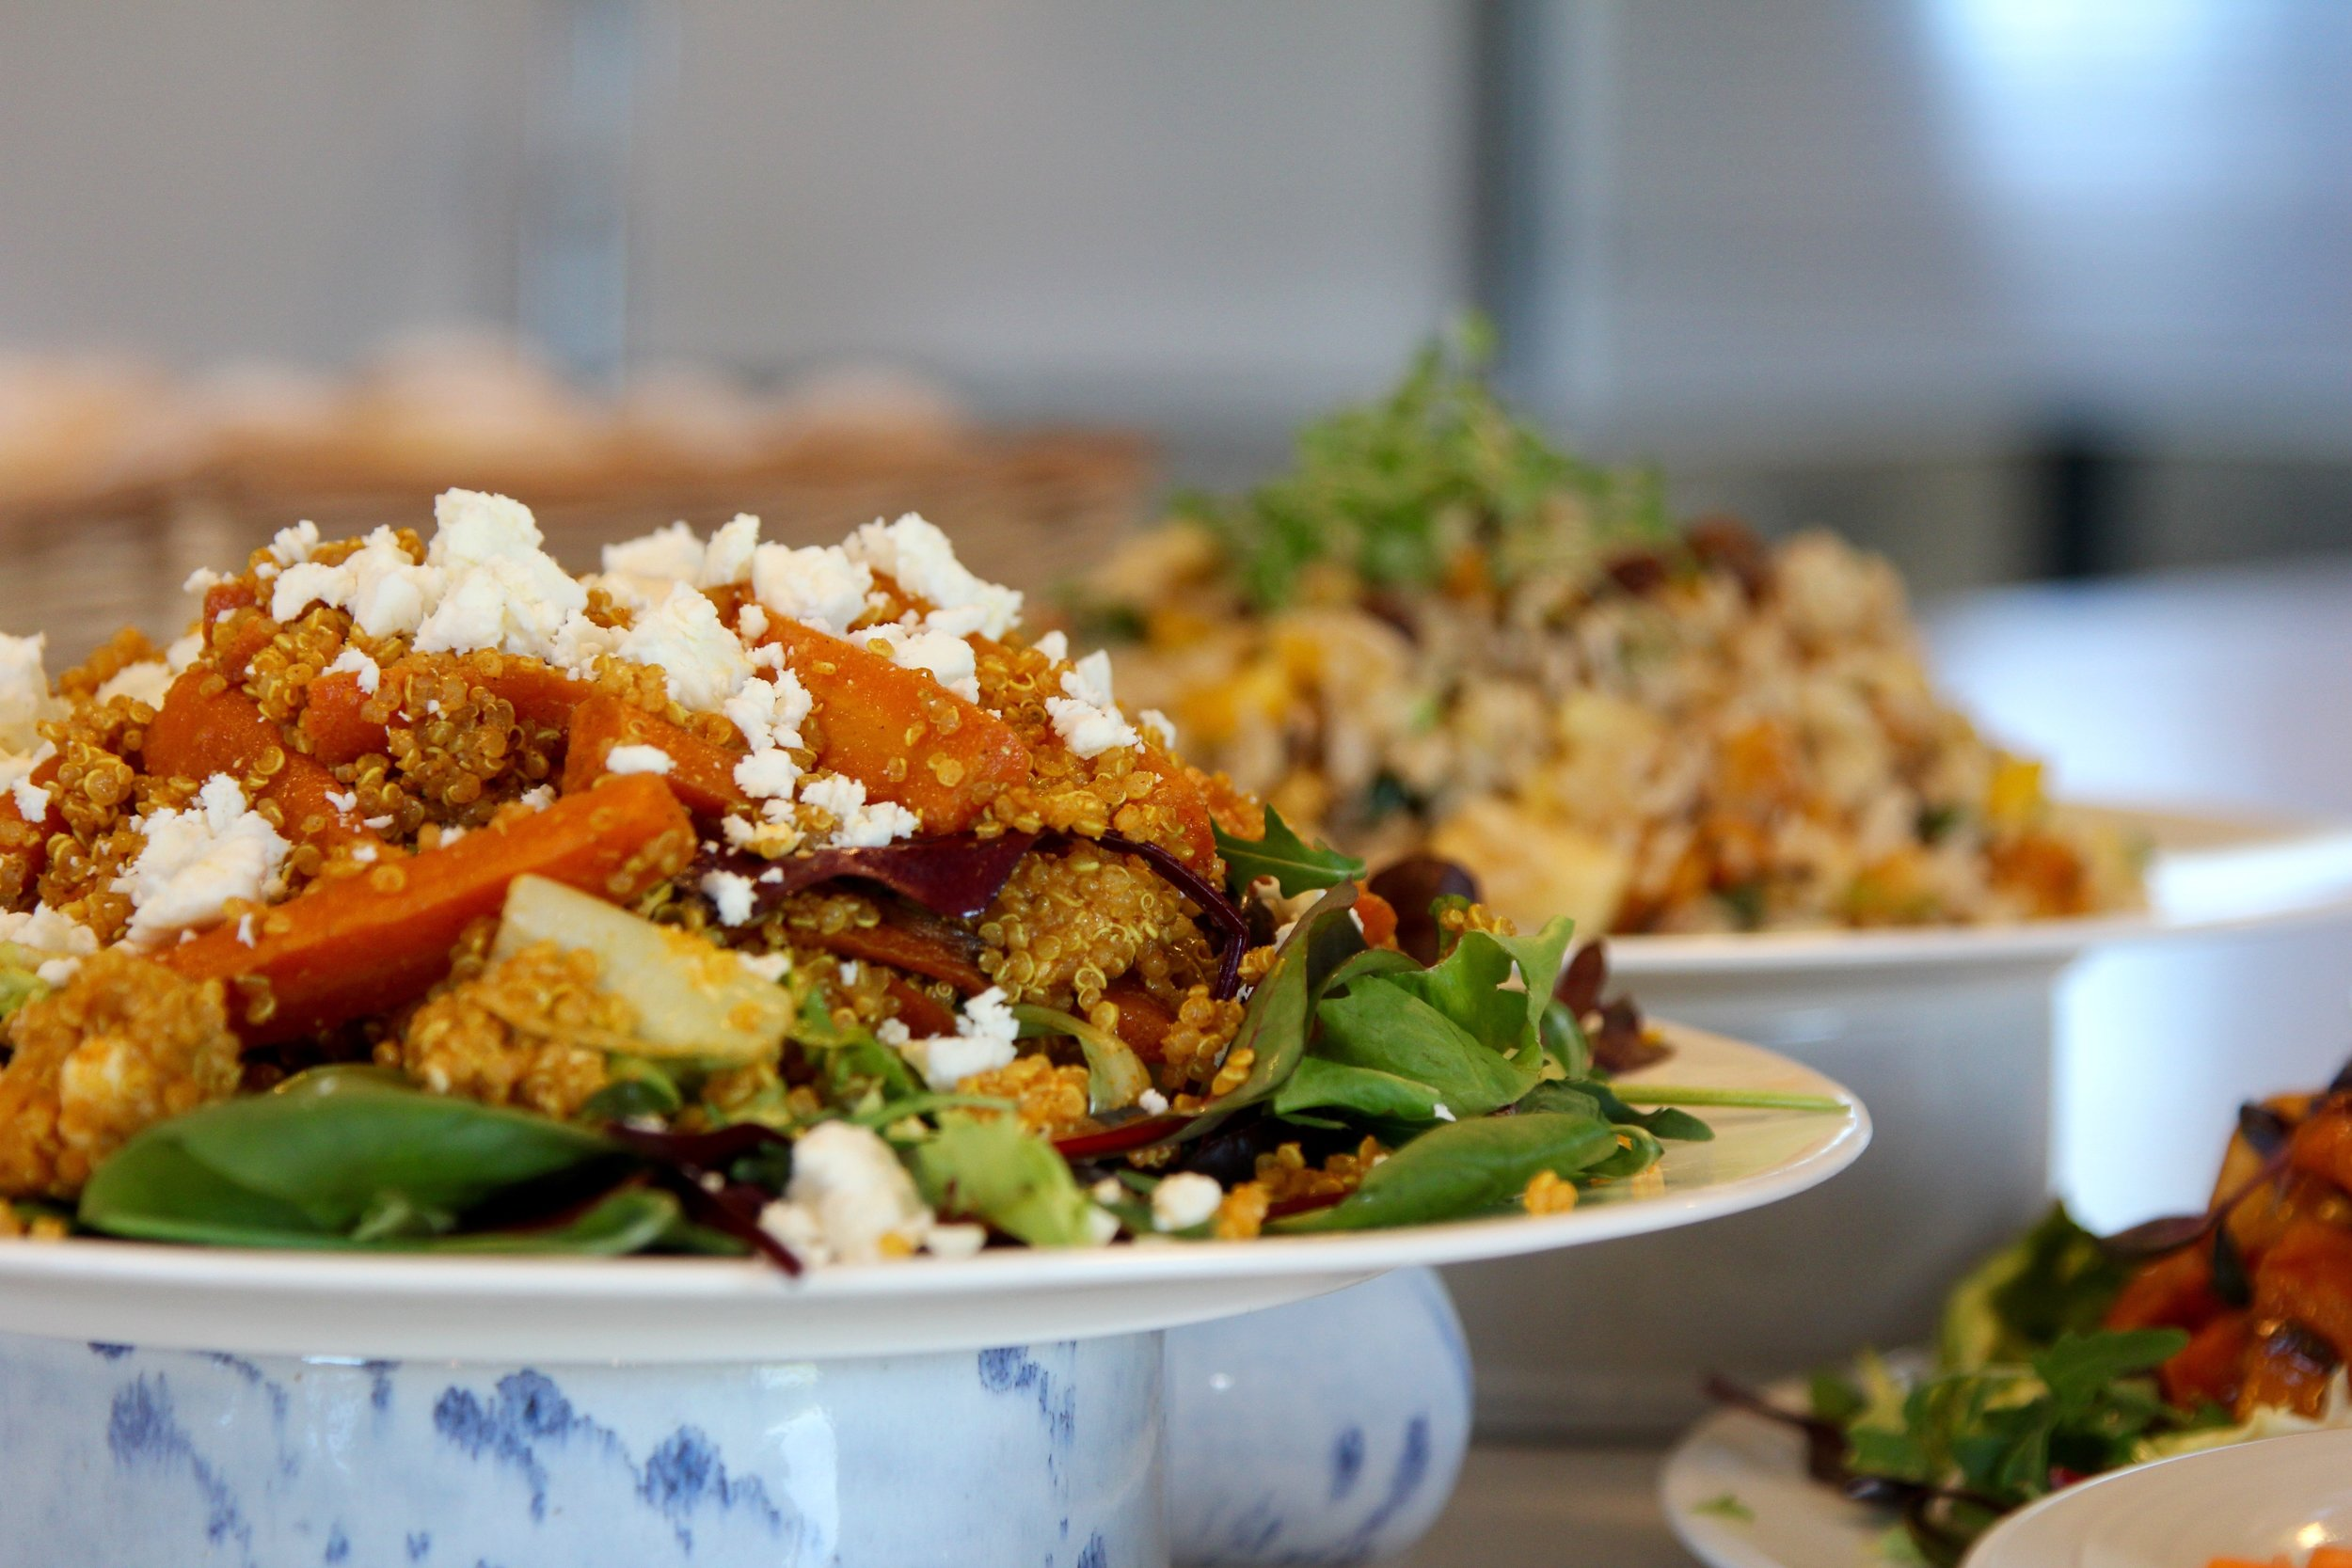 Spiced carrot and Quinoa salad